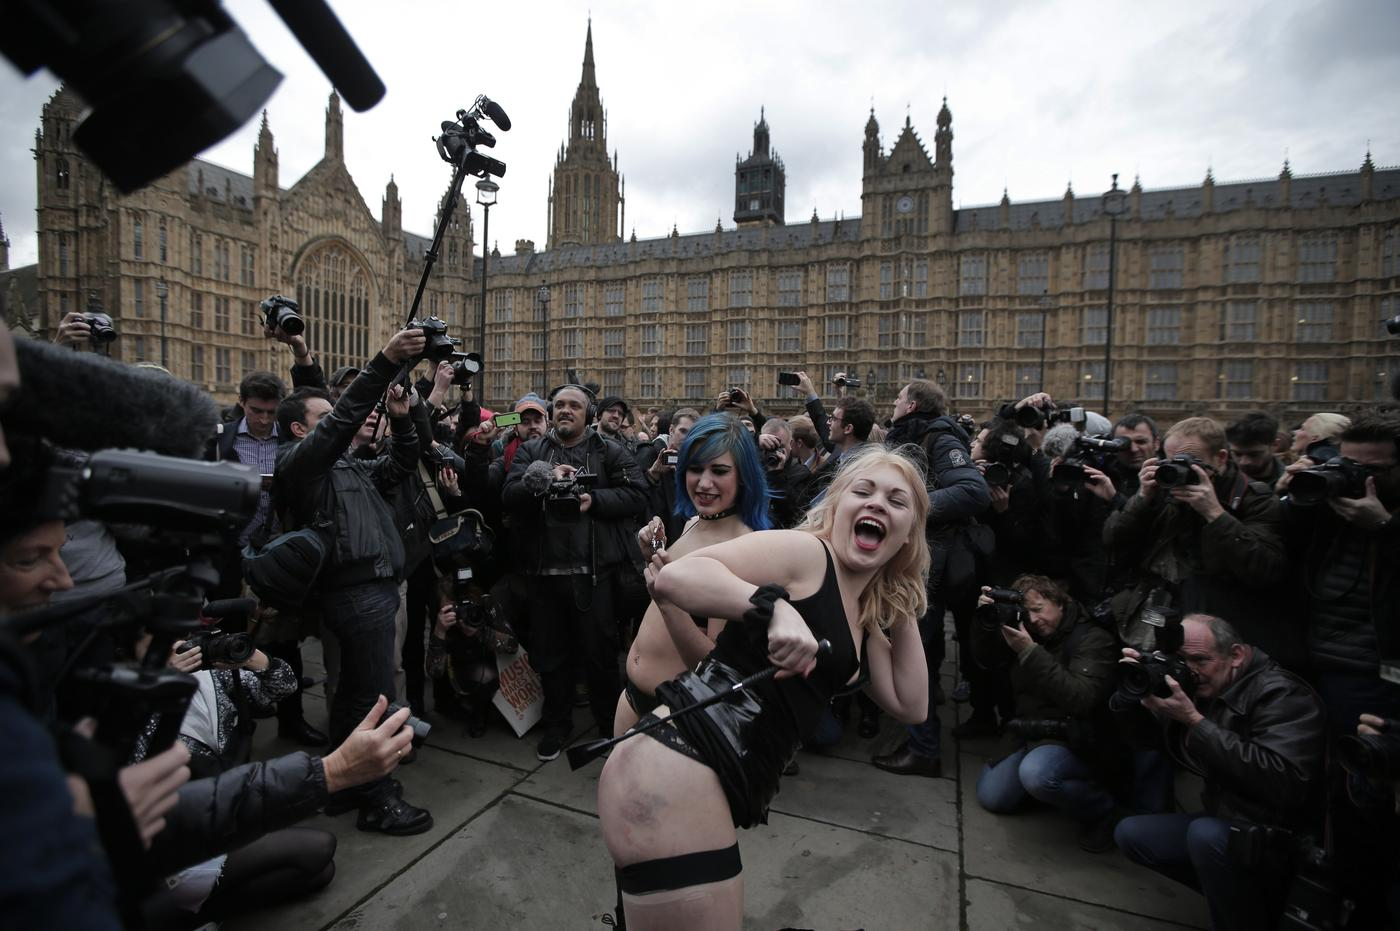 Why the 'face-sitting' protest backfired and made a mockery of porn fans